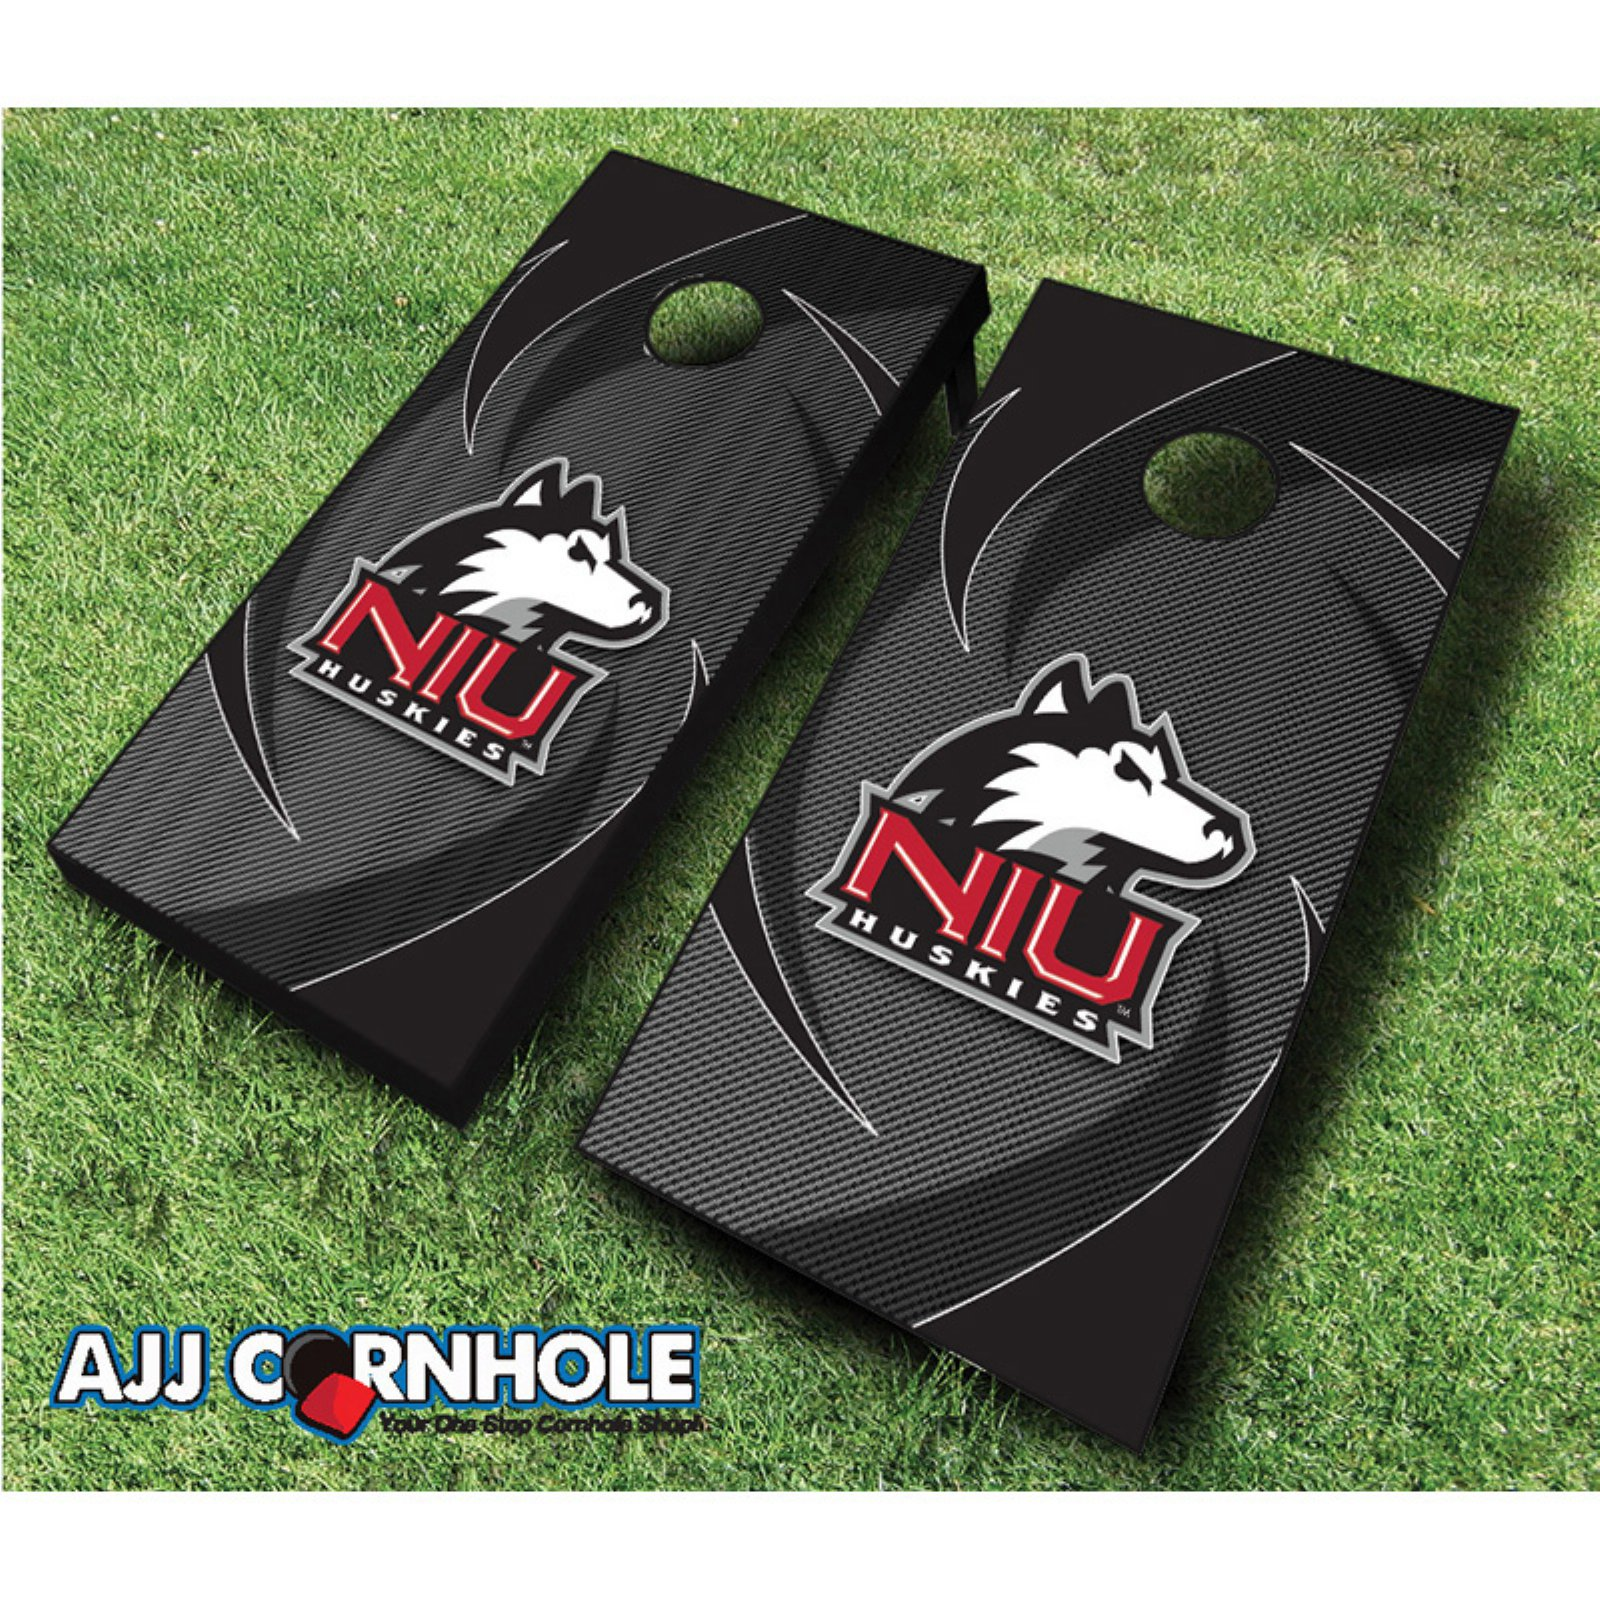 AJJ Cornhole Northern Illinois Swoosh Cornhole Set by